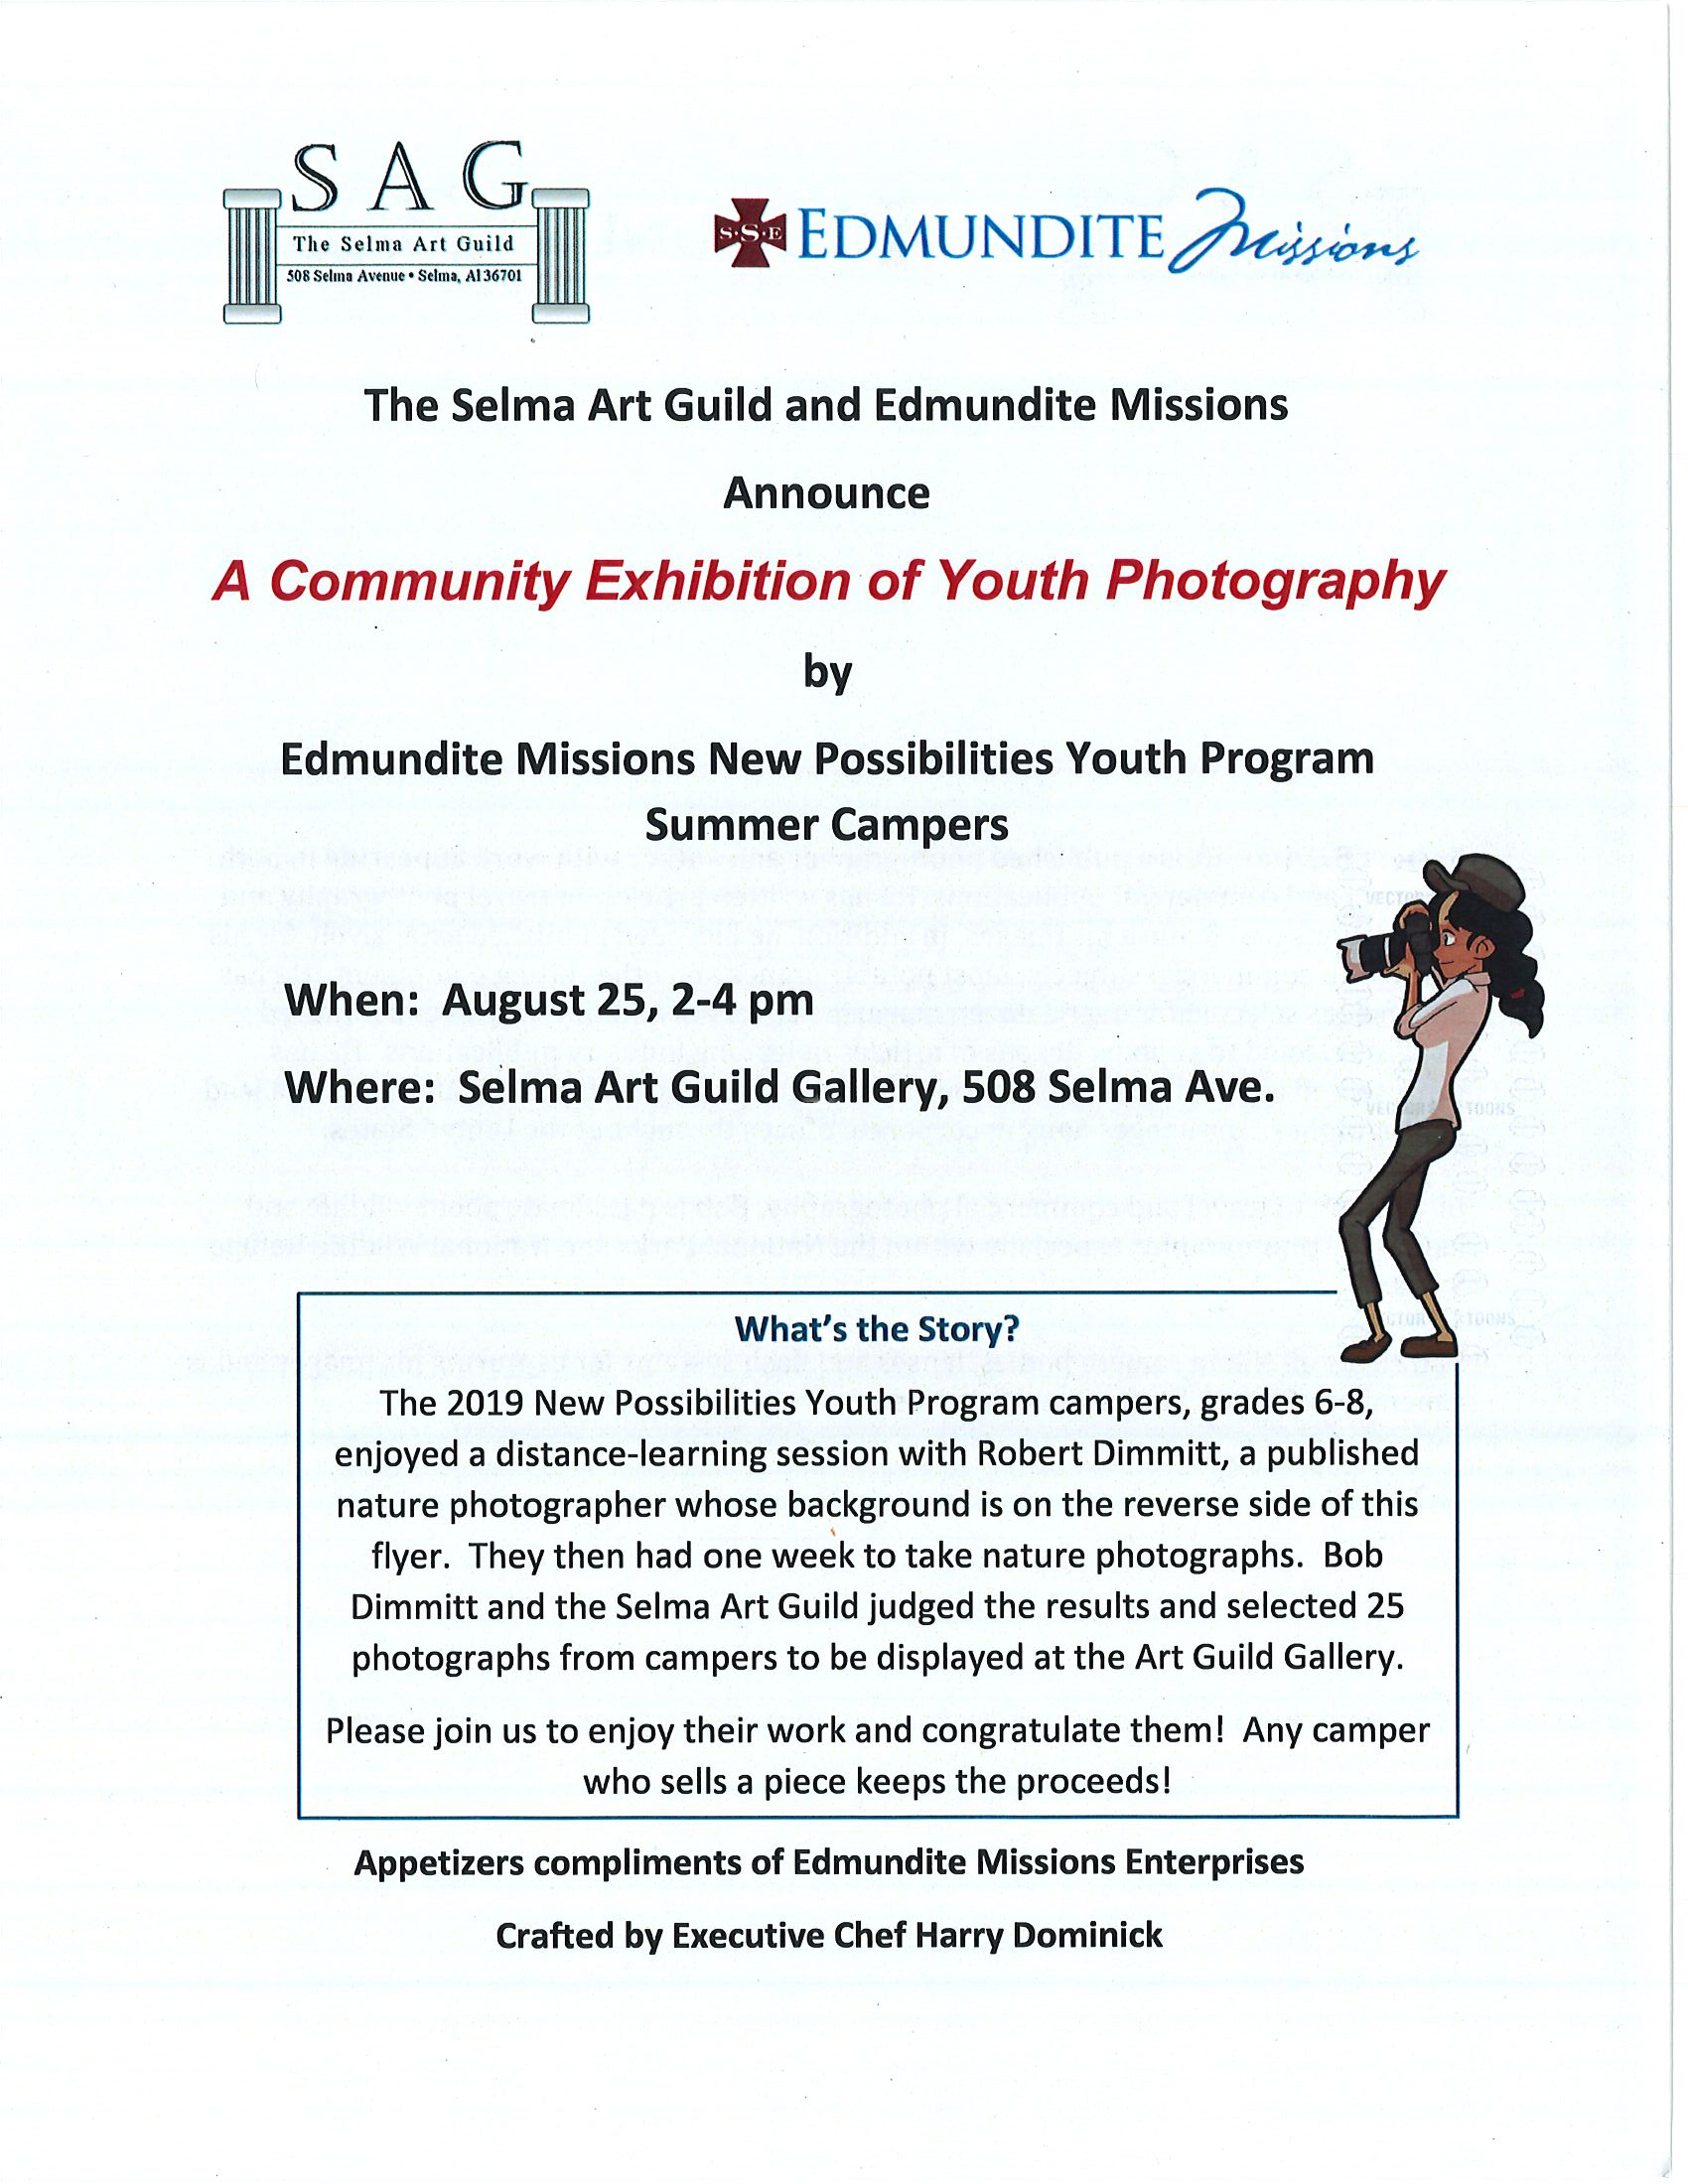 Community Exhibition of Youth Photography Page 1